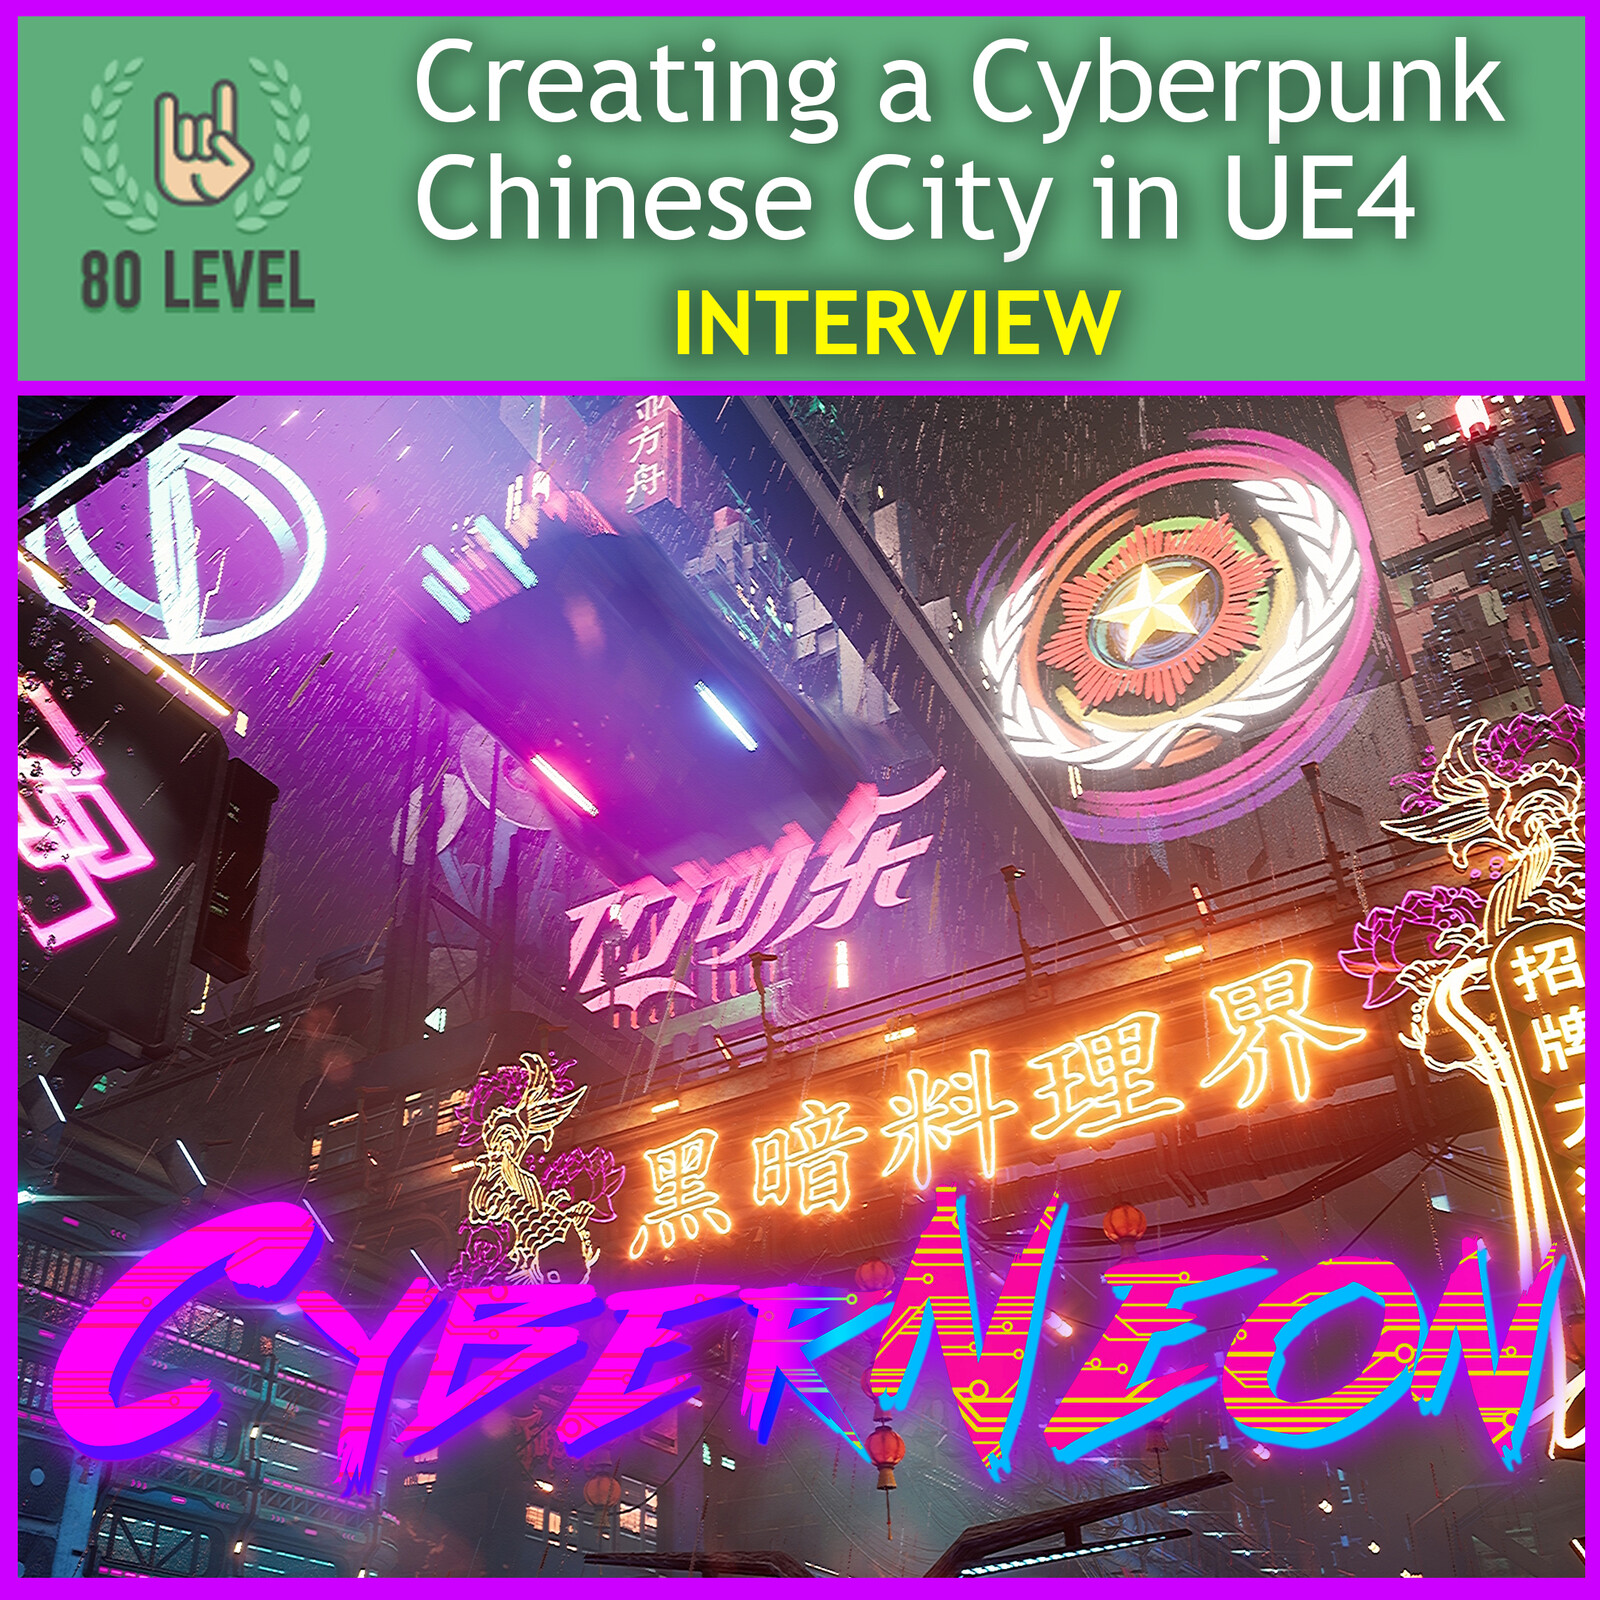 80.lv Article - Creating a Cyberpunk Chinese City in UE4